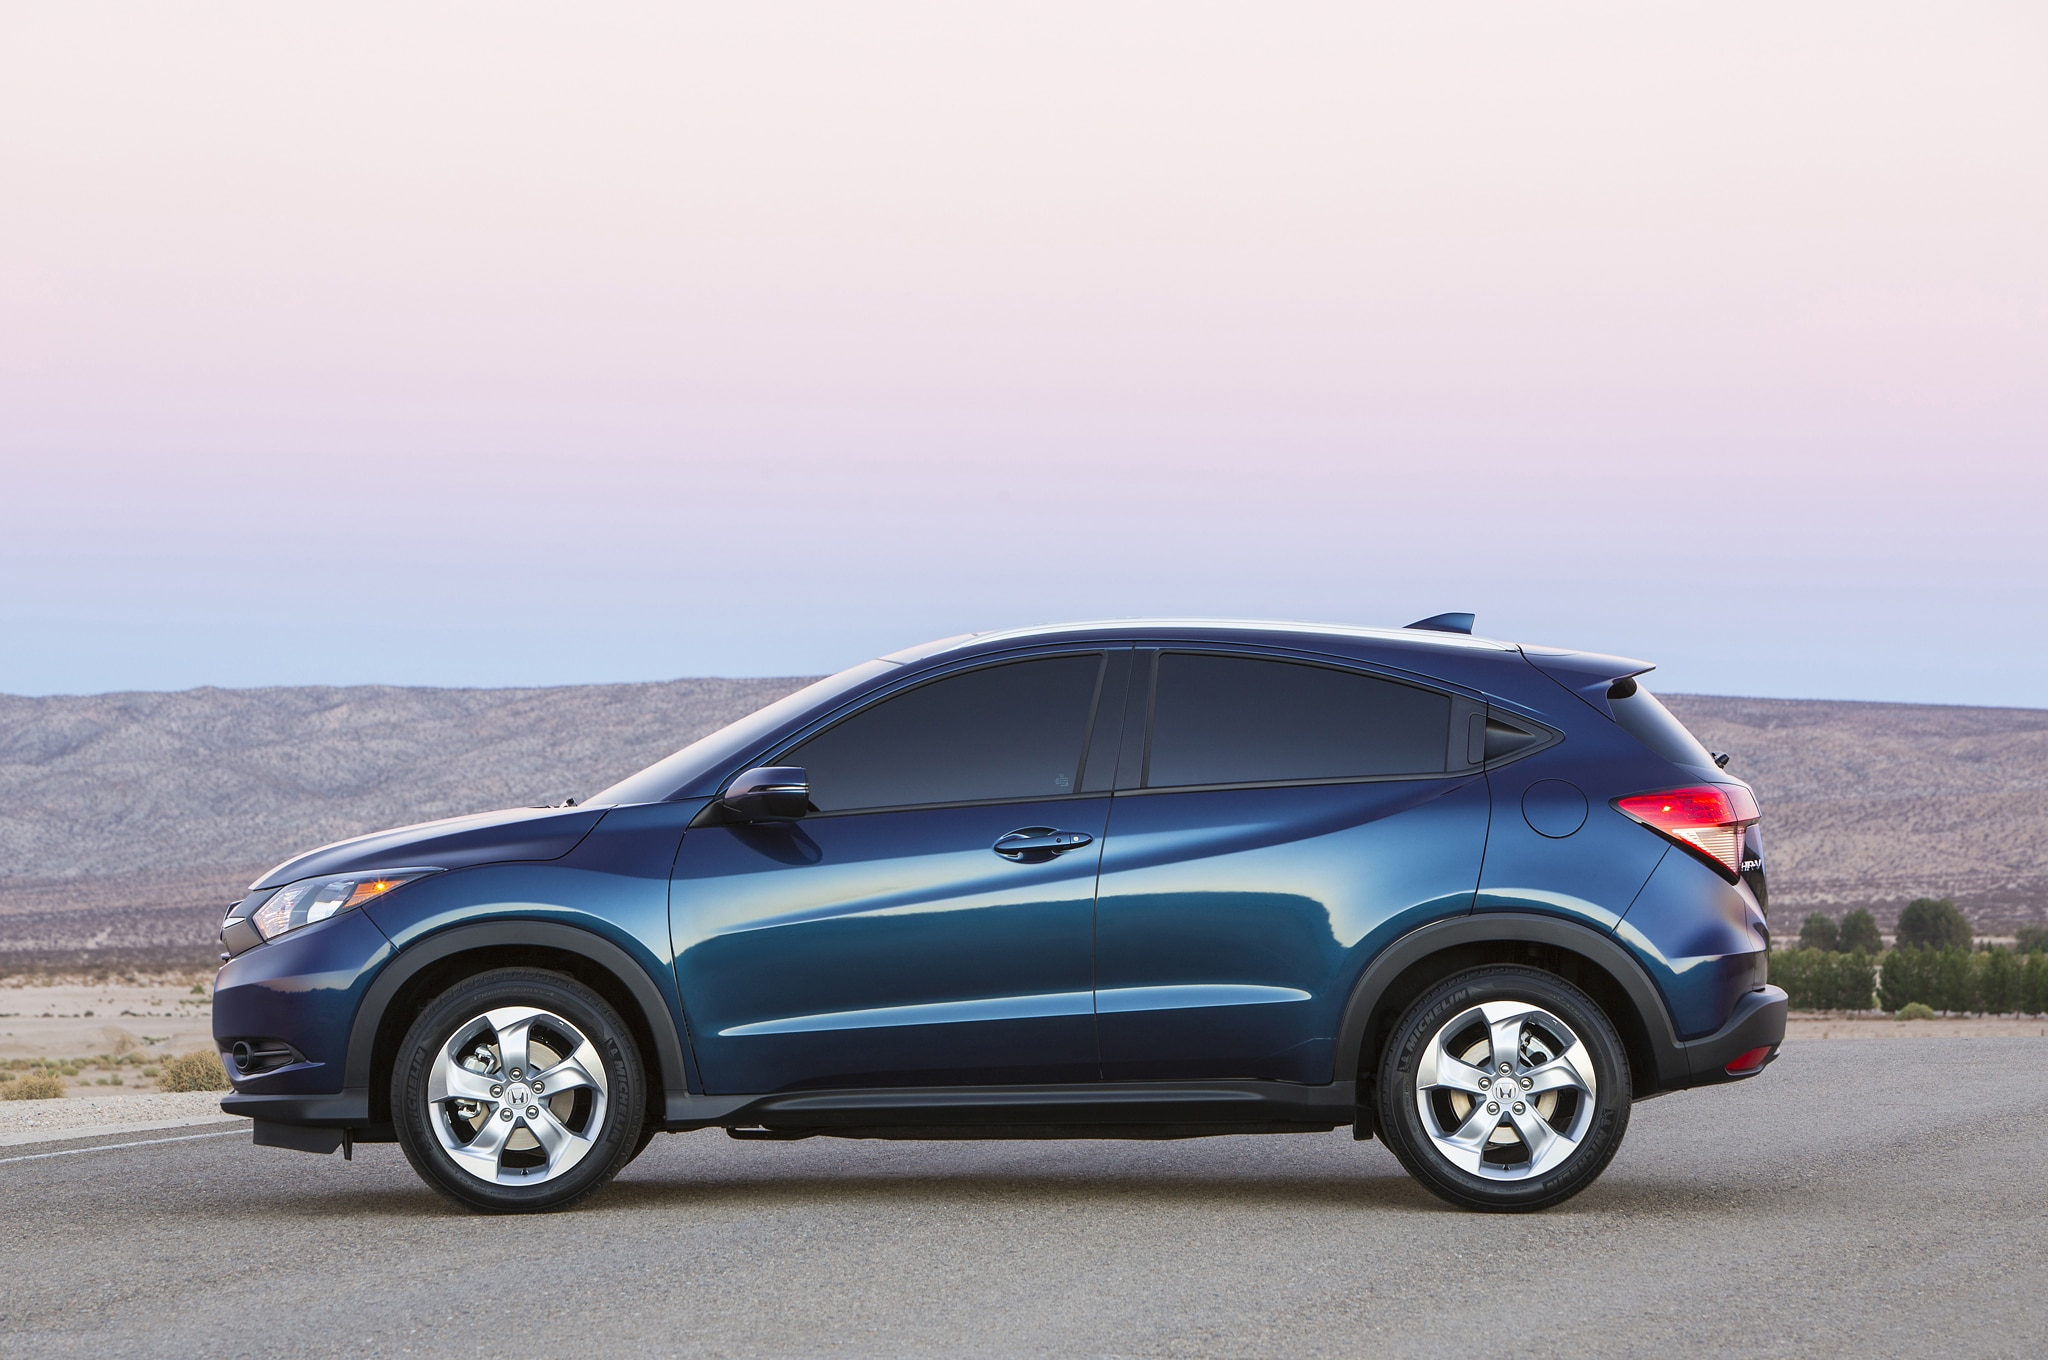 Temple Of Vtec >> The Temple of VTEC - Honda and Acura Enthusiasts Online Forums > All-New Acura CDX Compact SUV ...